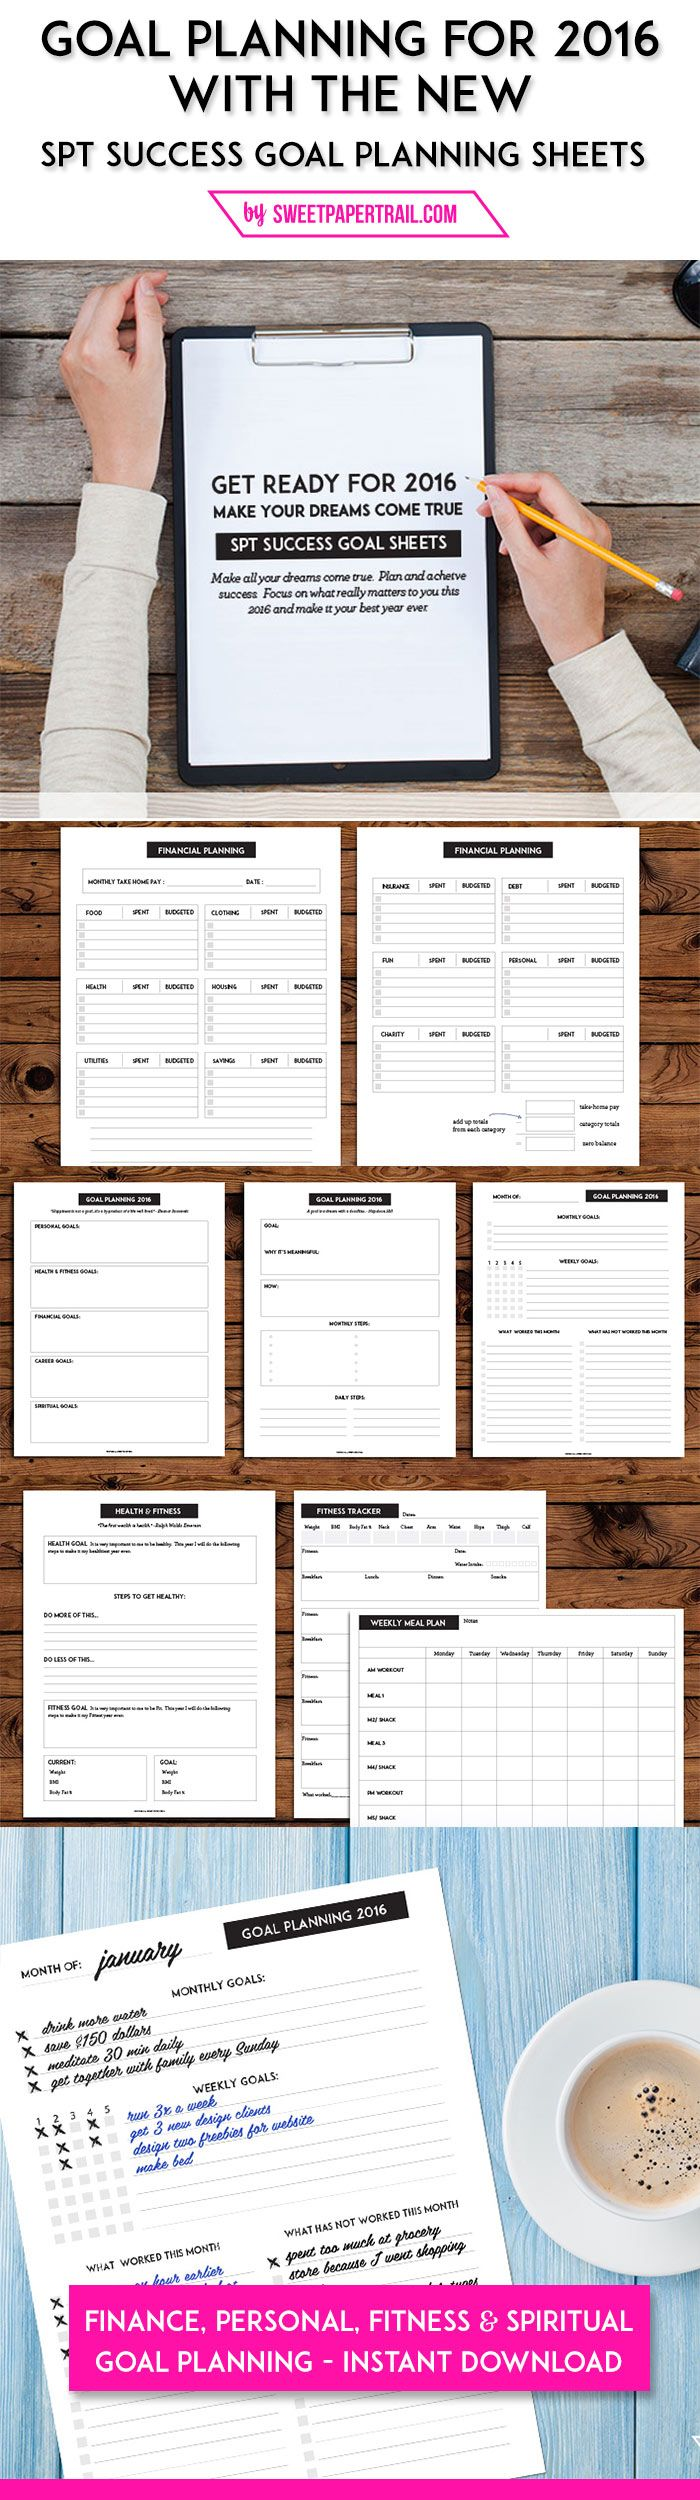 2016 goal planning worksheets by Sweet Paper Trail